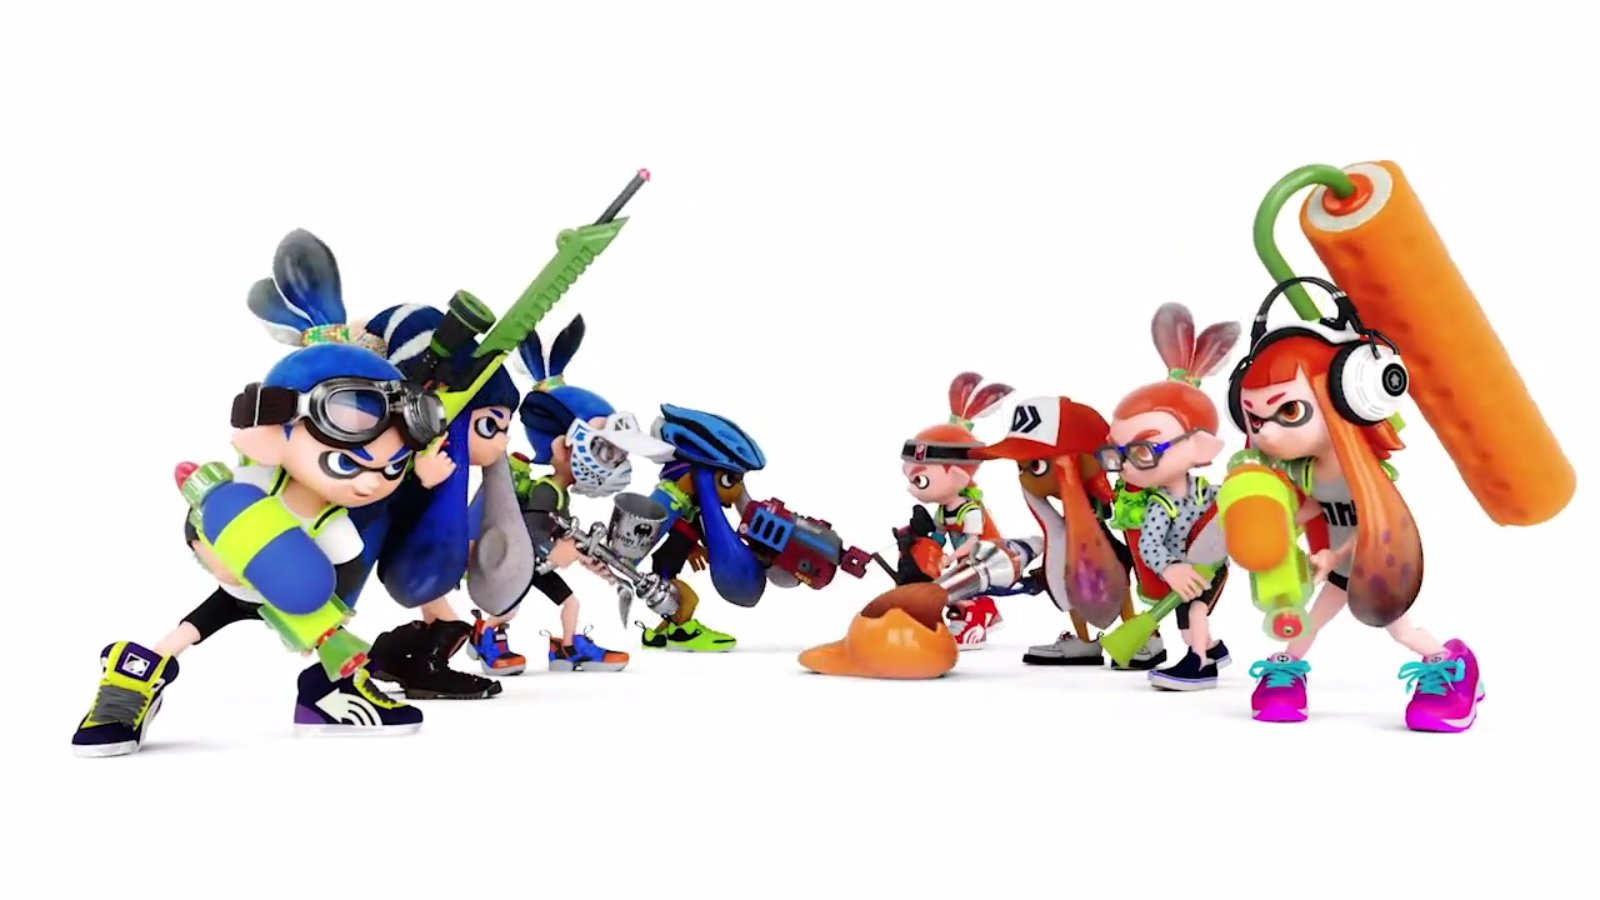 What the gaming industry can learn from splatoon goomba stomp